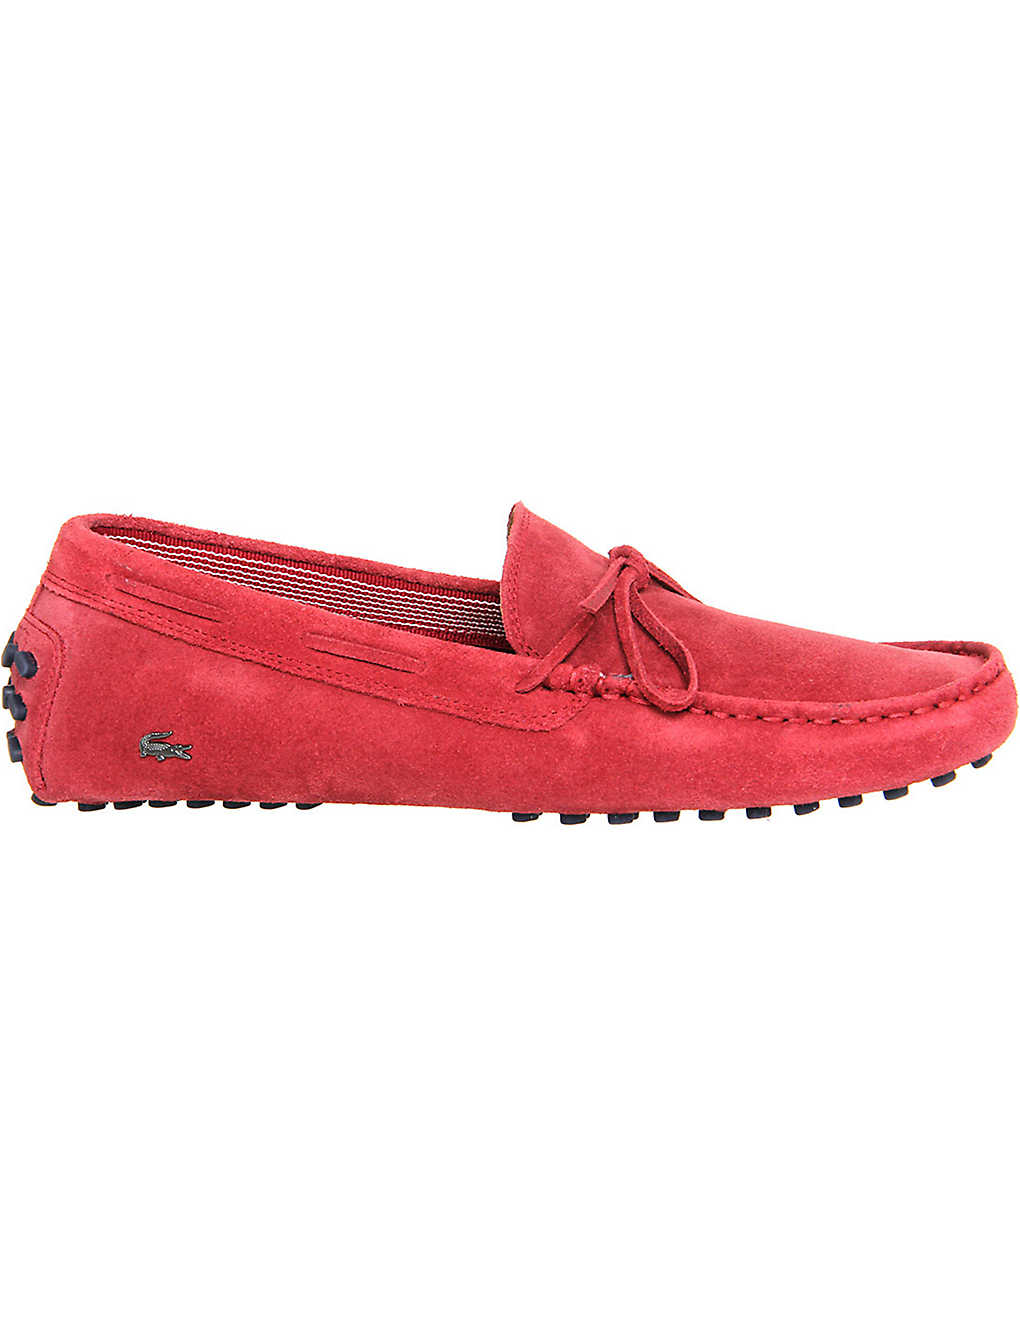 d18fea2ccc0f2 LACOSTE - Concours lace-up suede driving moccasins